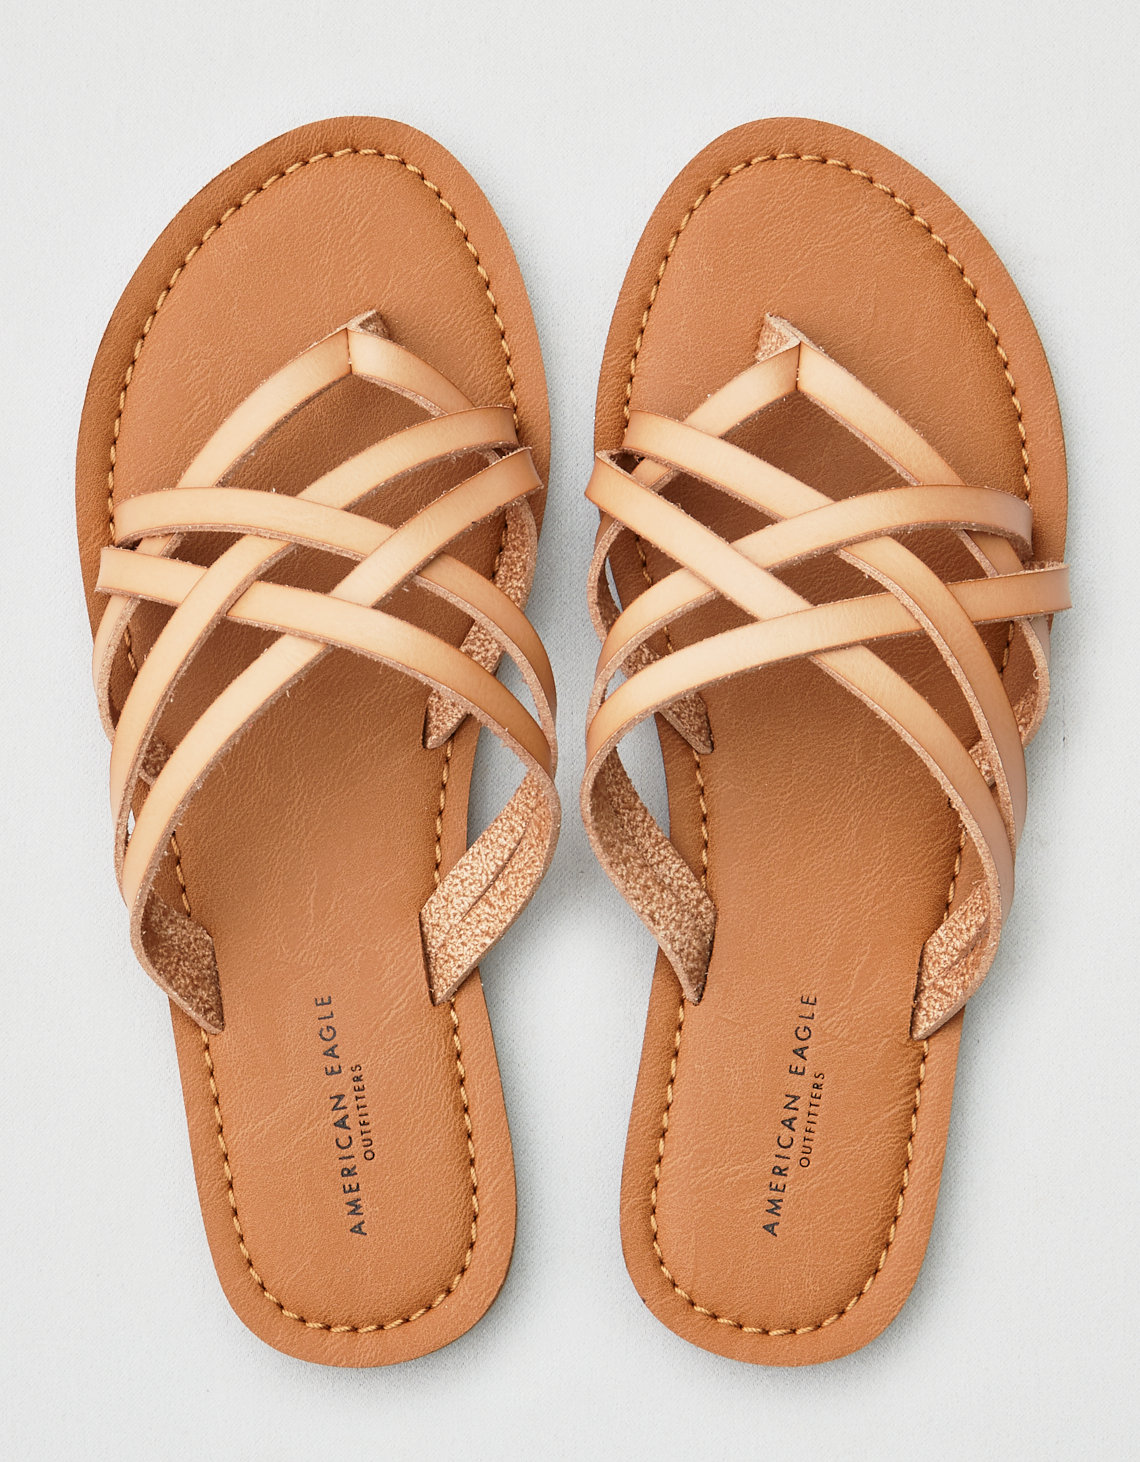 93f5779f6be AEO Strappy Slide Sandals